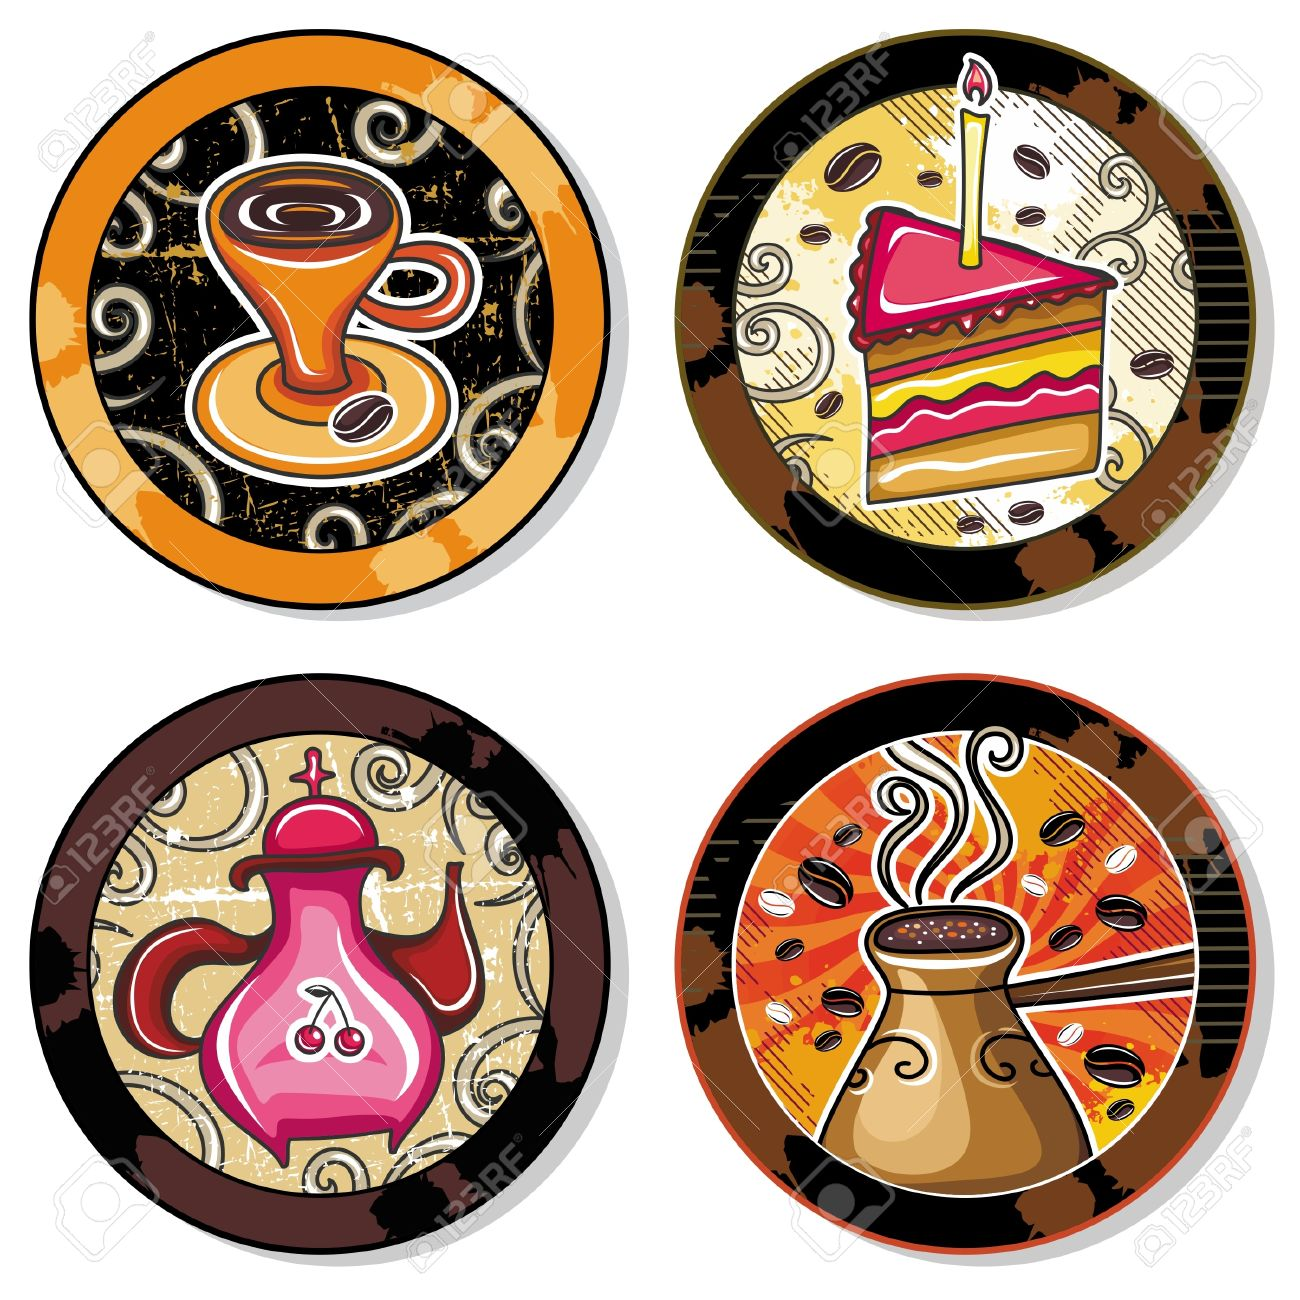 Grunge collection of drink coasters - coffee, tea, yerba mate theme Stock Vector - 9627245